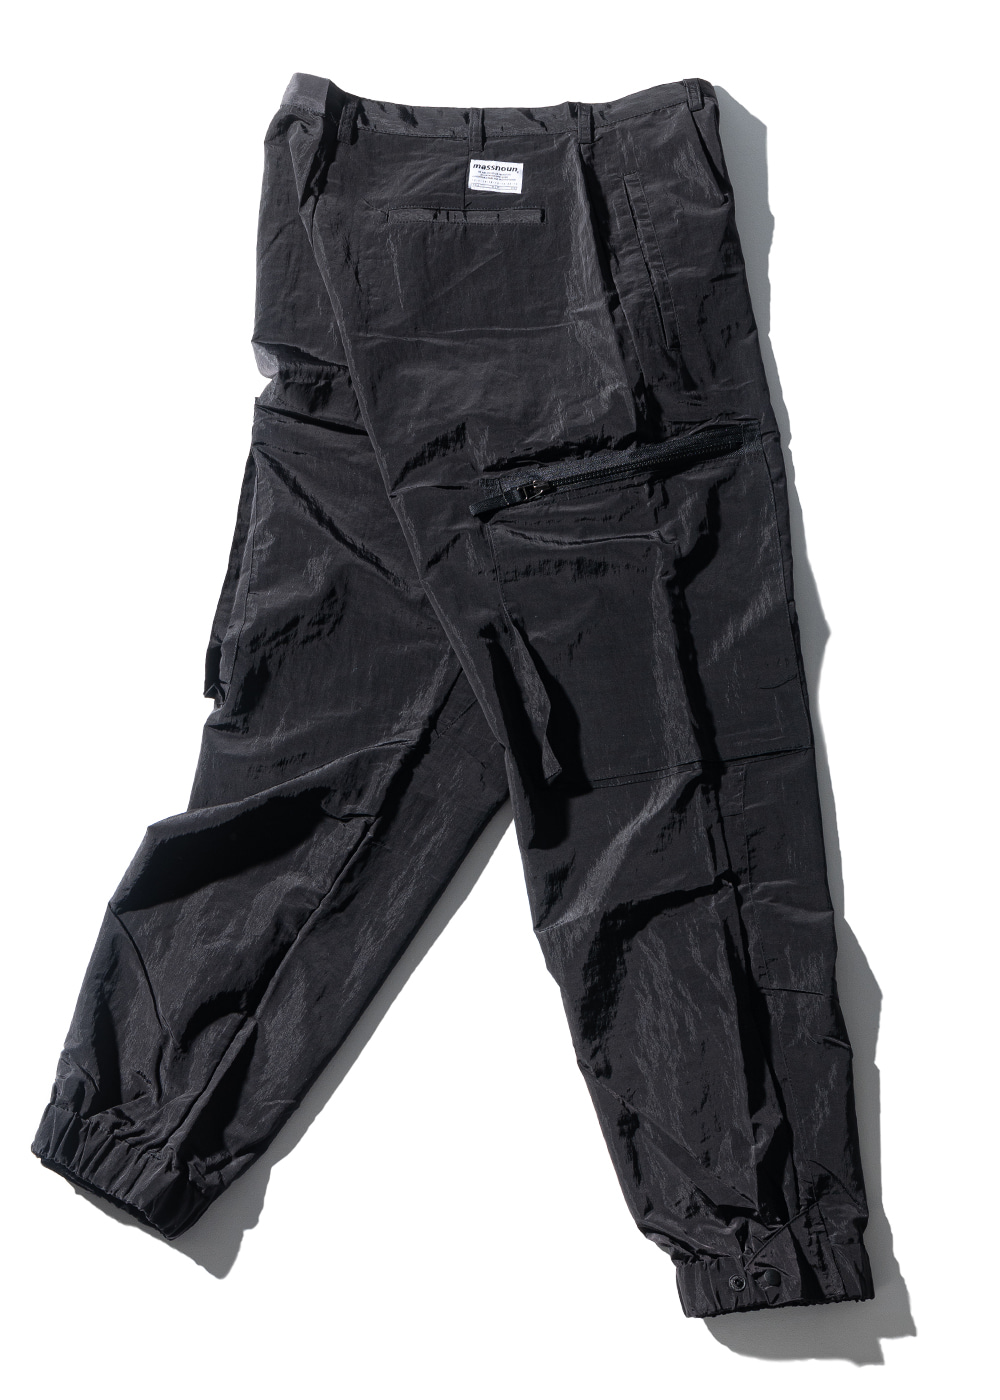 NYLON METAL SIGNATURE CARGO PANTS MUZTP001-BK